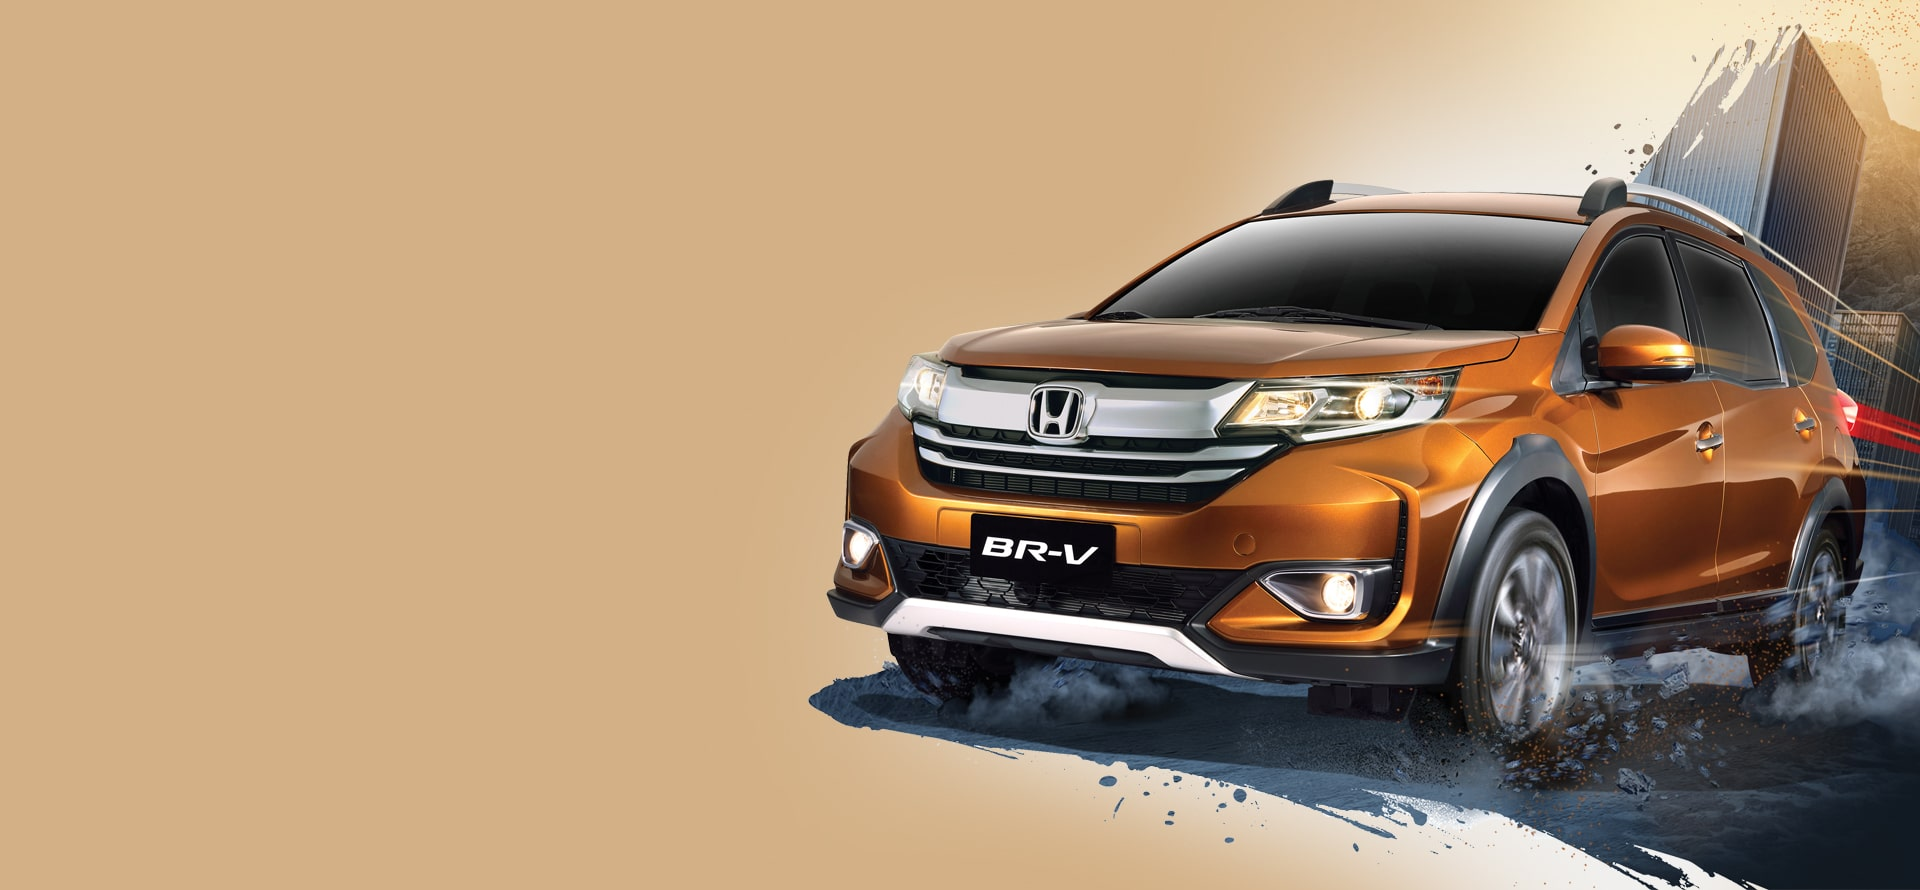 honda br-v road test review front quarter exterior philippines